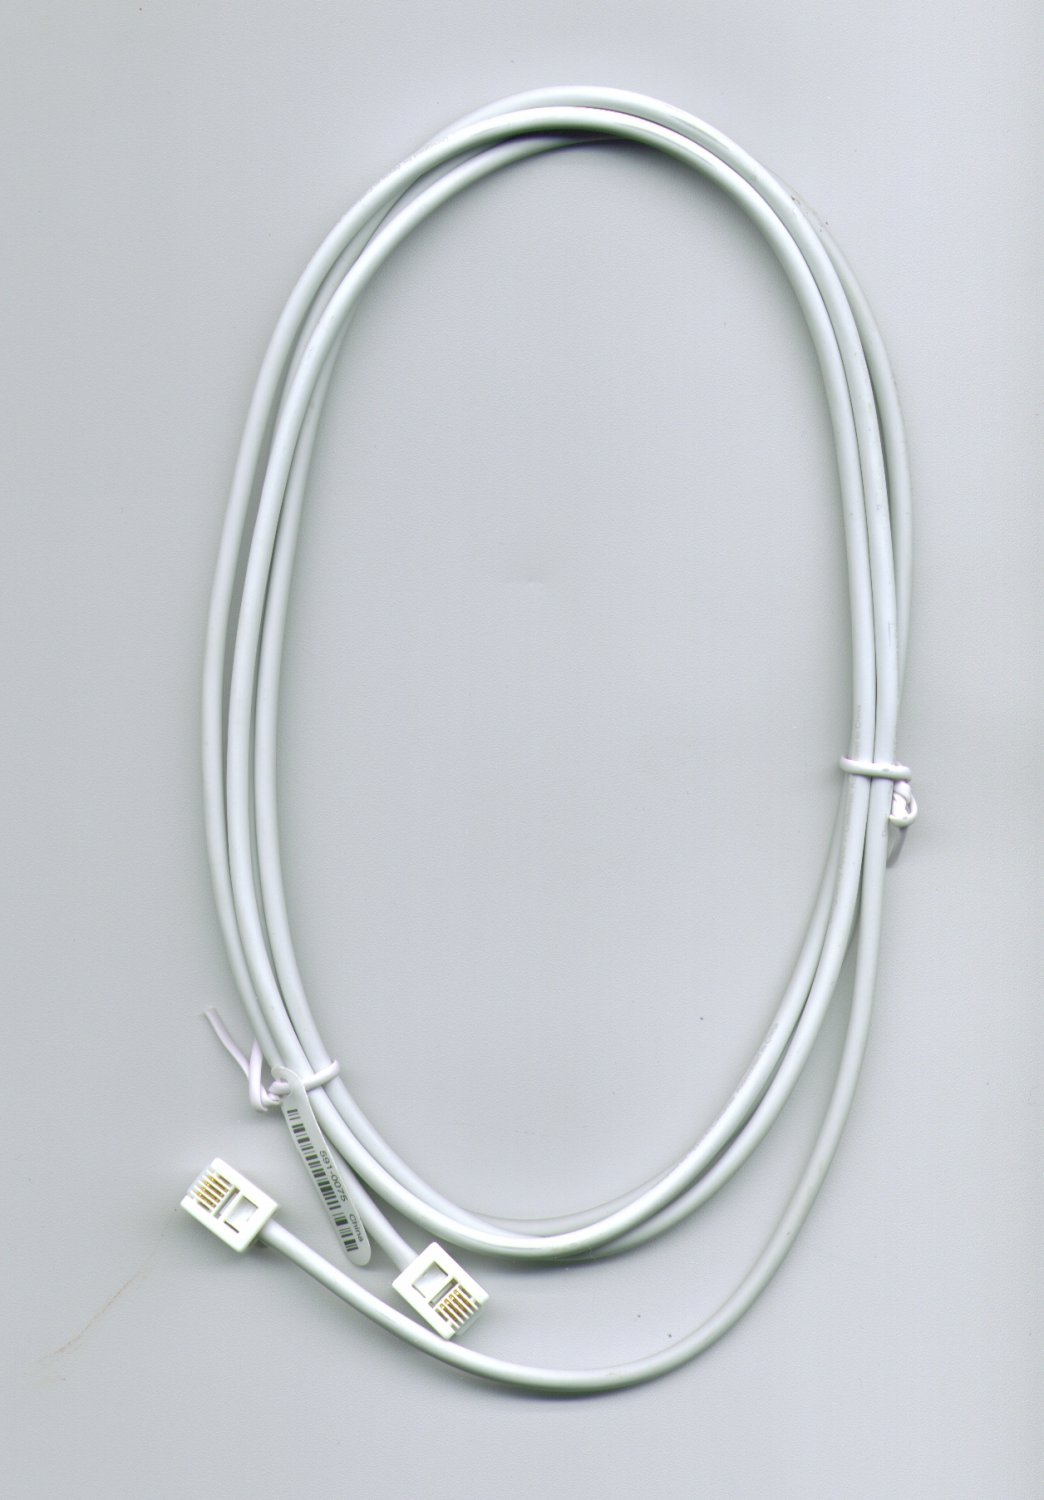 NEW GENUINE OEM ORIGINAL APPLE MAC  WHITE RJ-11 MODEM PHONE CABLE 591-0075 (6 foot long)